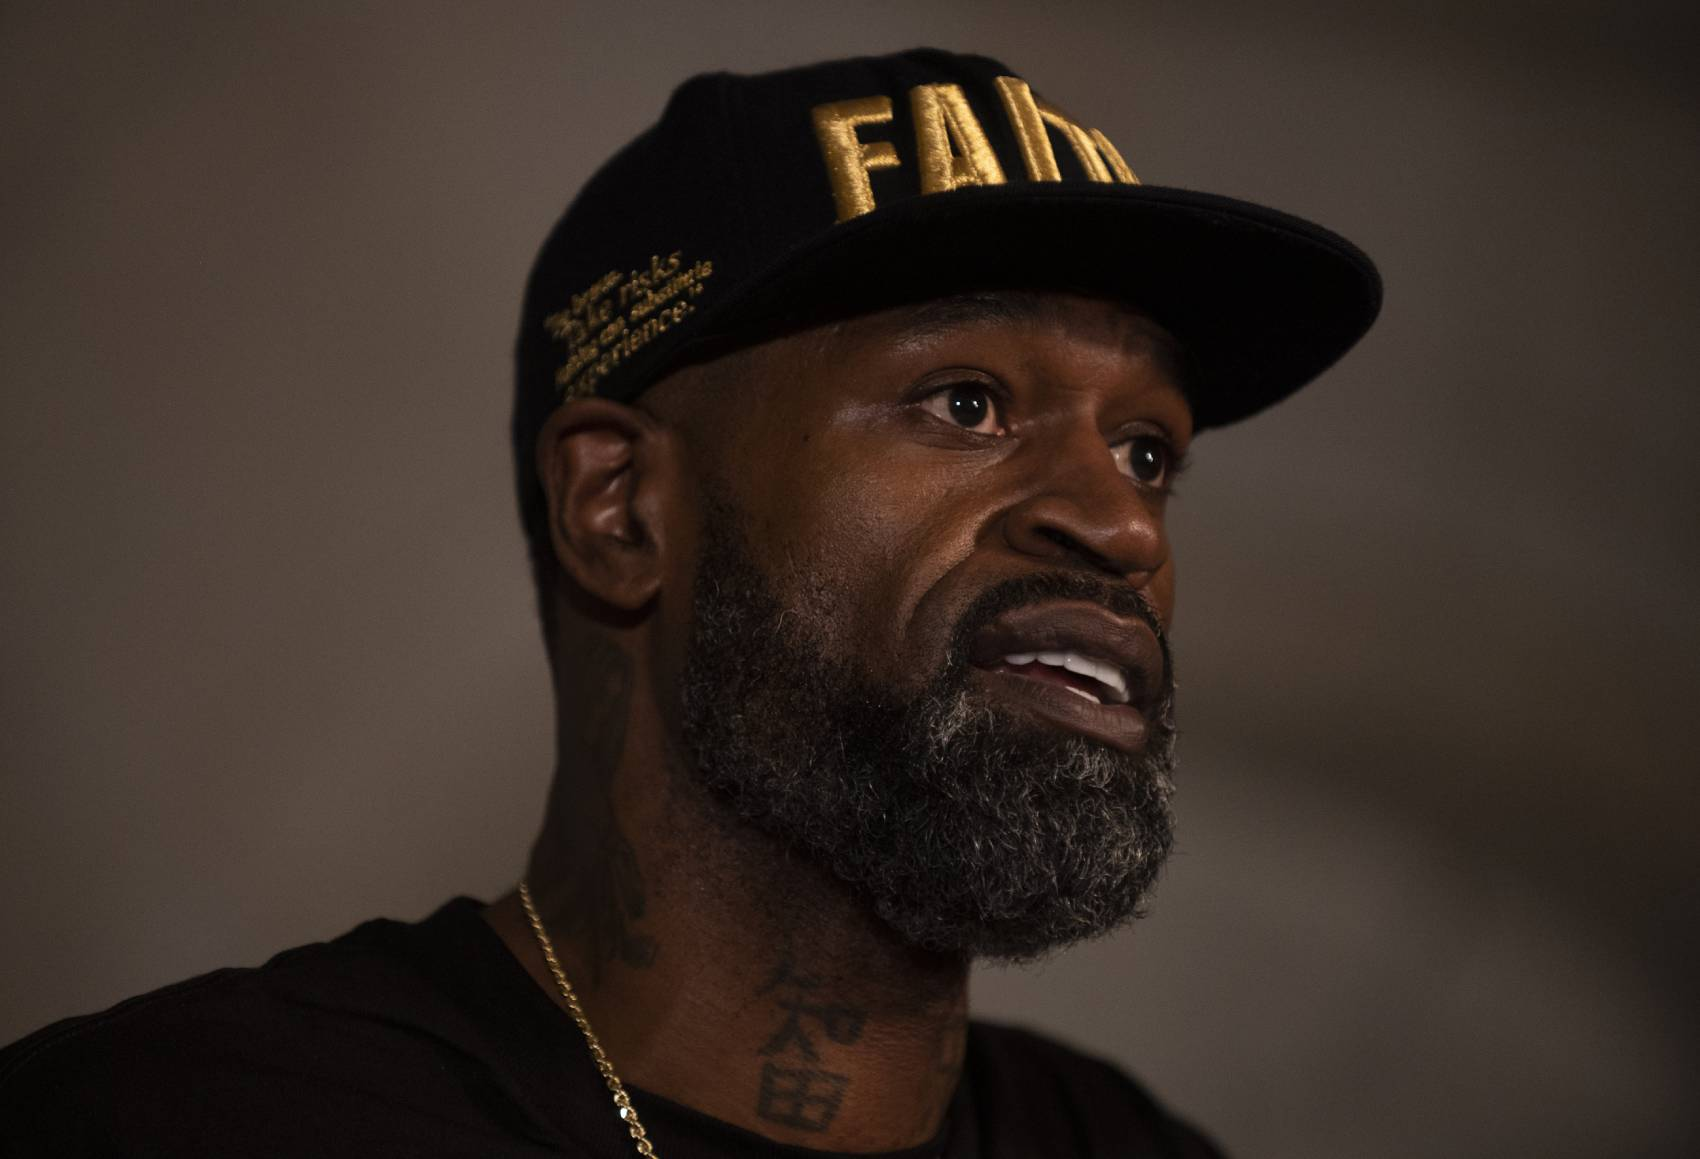 Former NBA champion Stephen Jackson recently made controversial and anti-Semitic comments. NBA stars and his employer, Showtime, have each remained quiet.